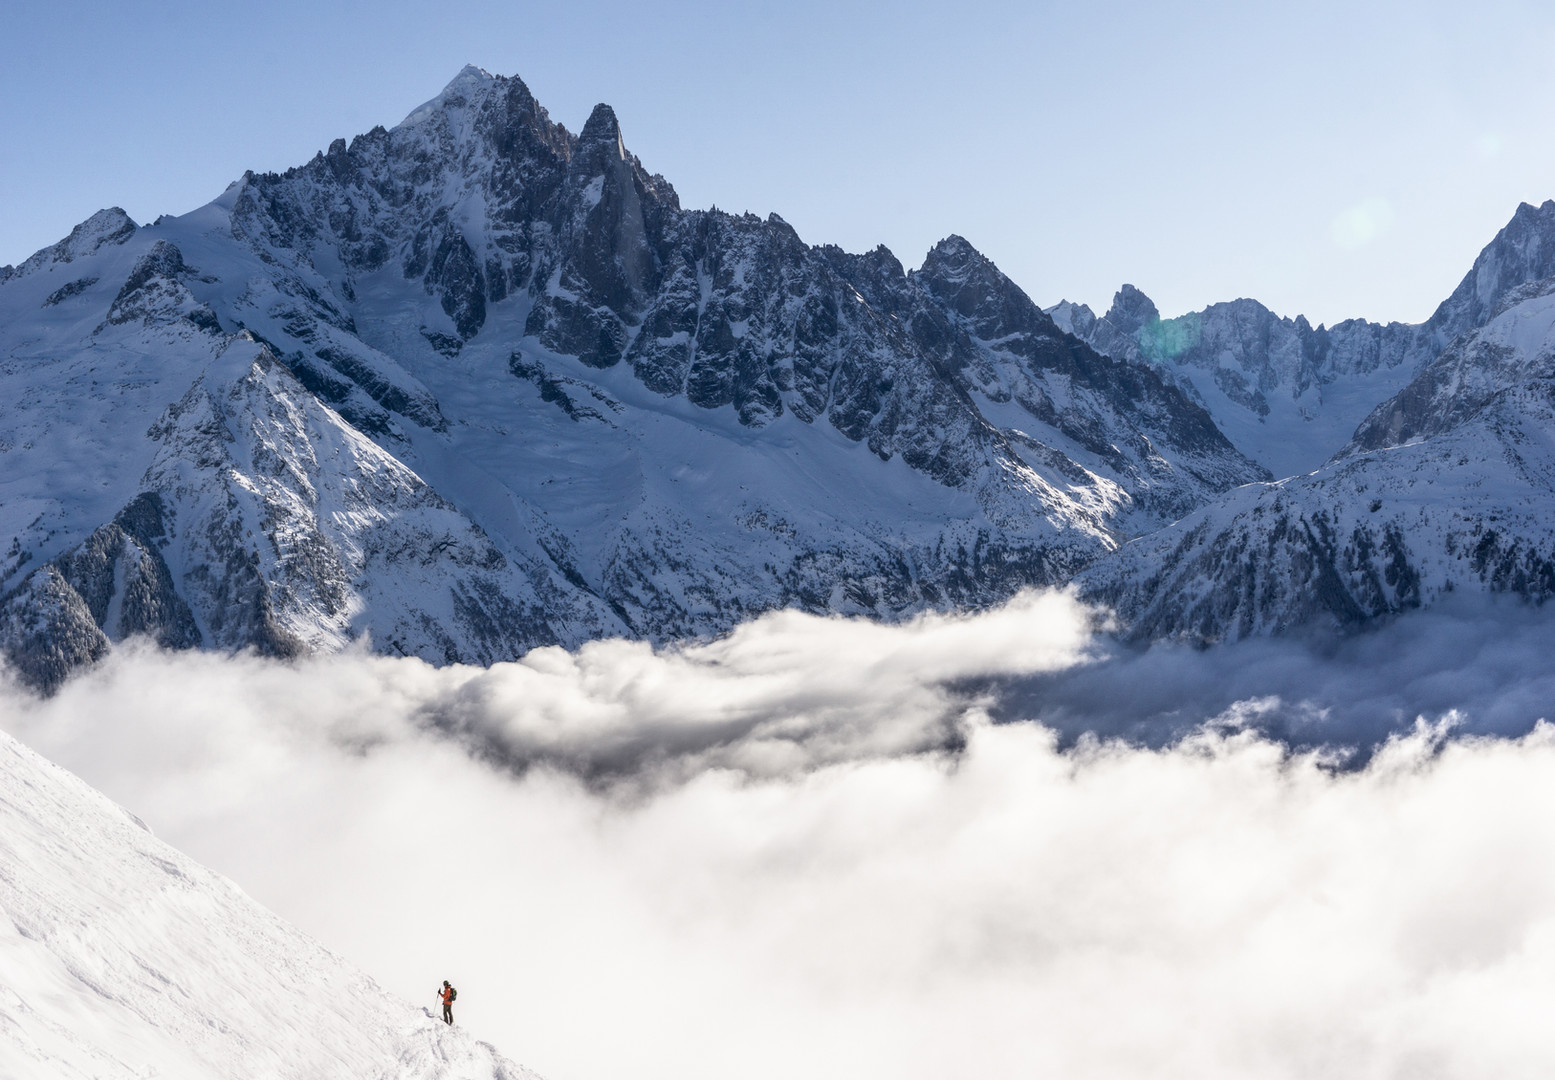 Xavi skiing above the Clouds